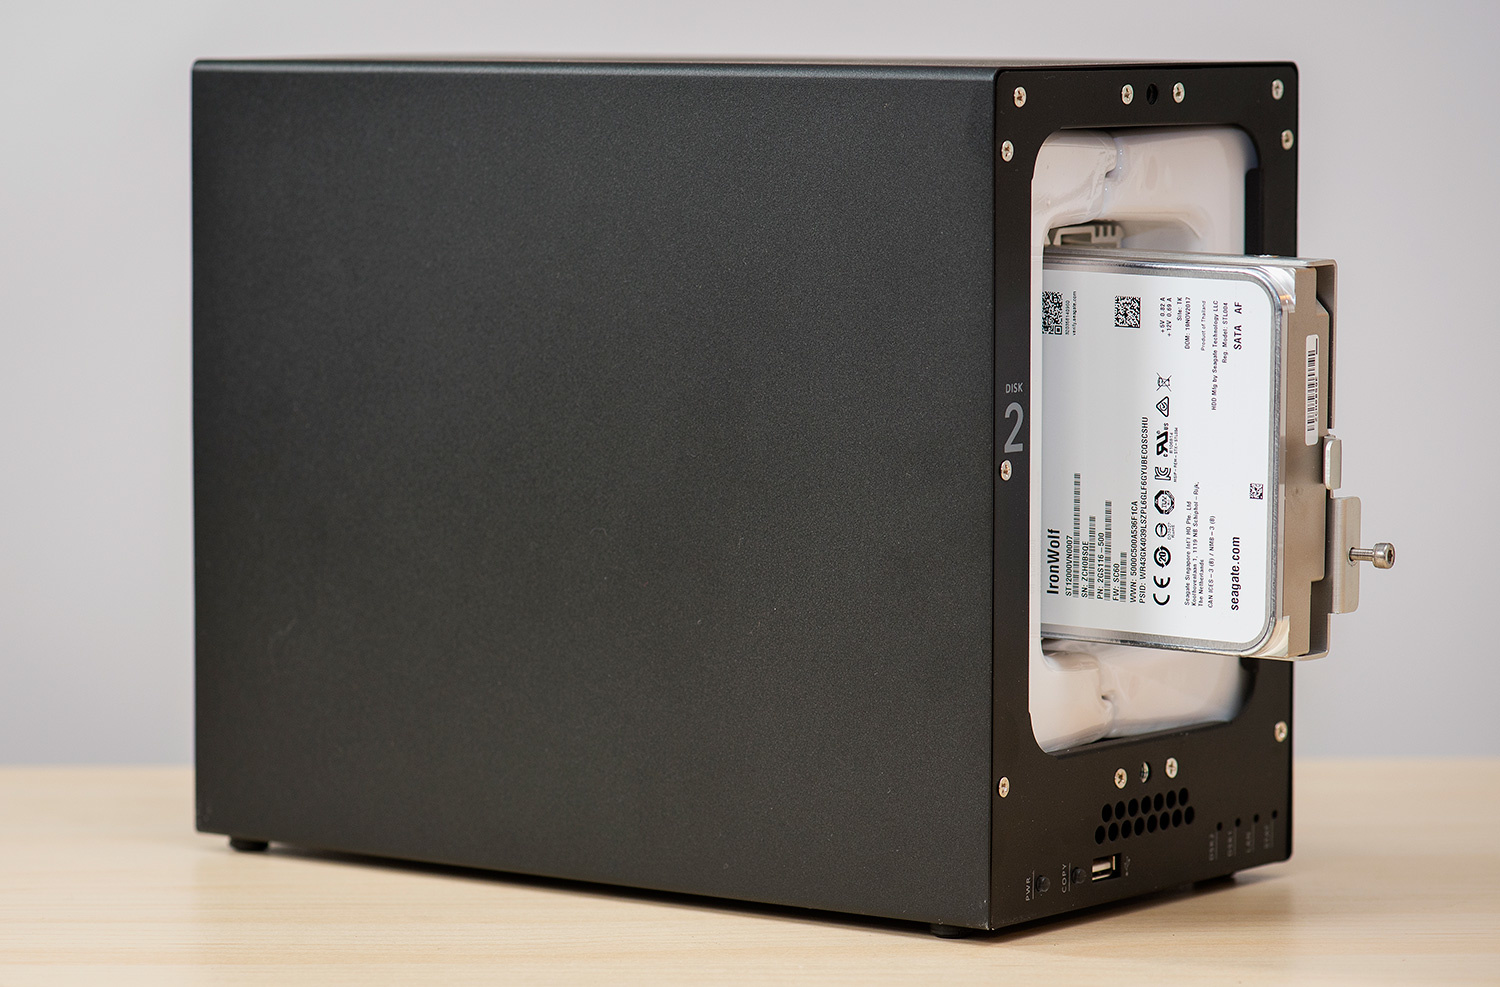 The interior of the ioSafe 218 with one of the Seagate IronWolf drives inside.